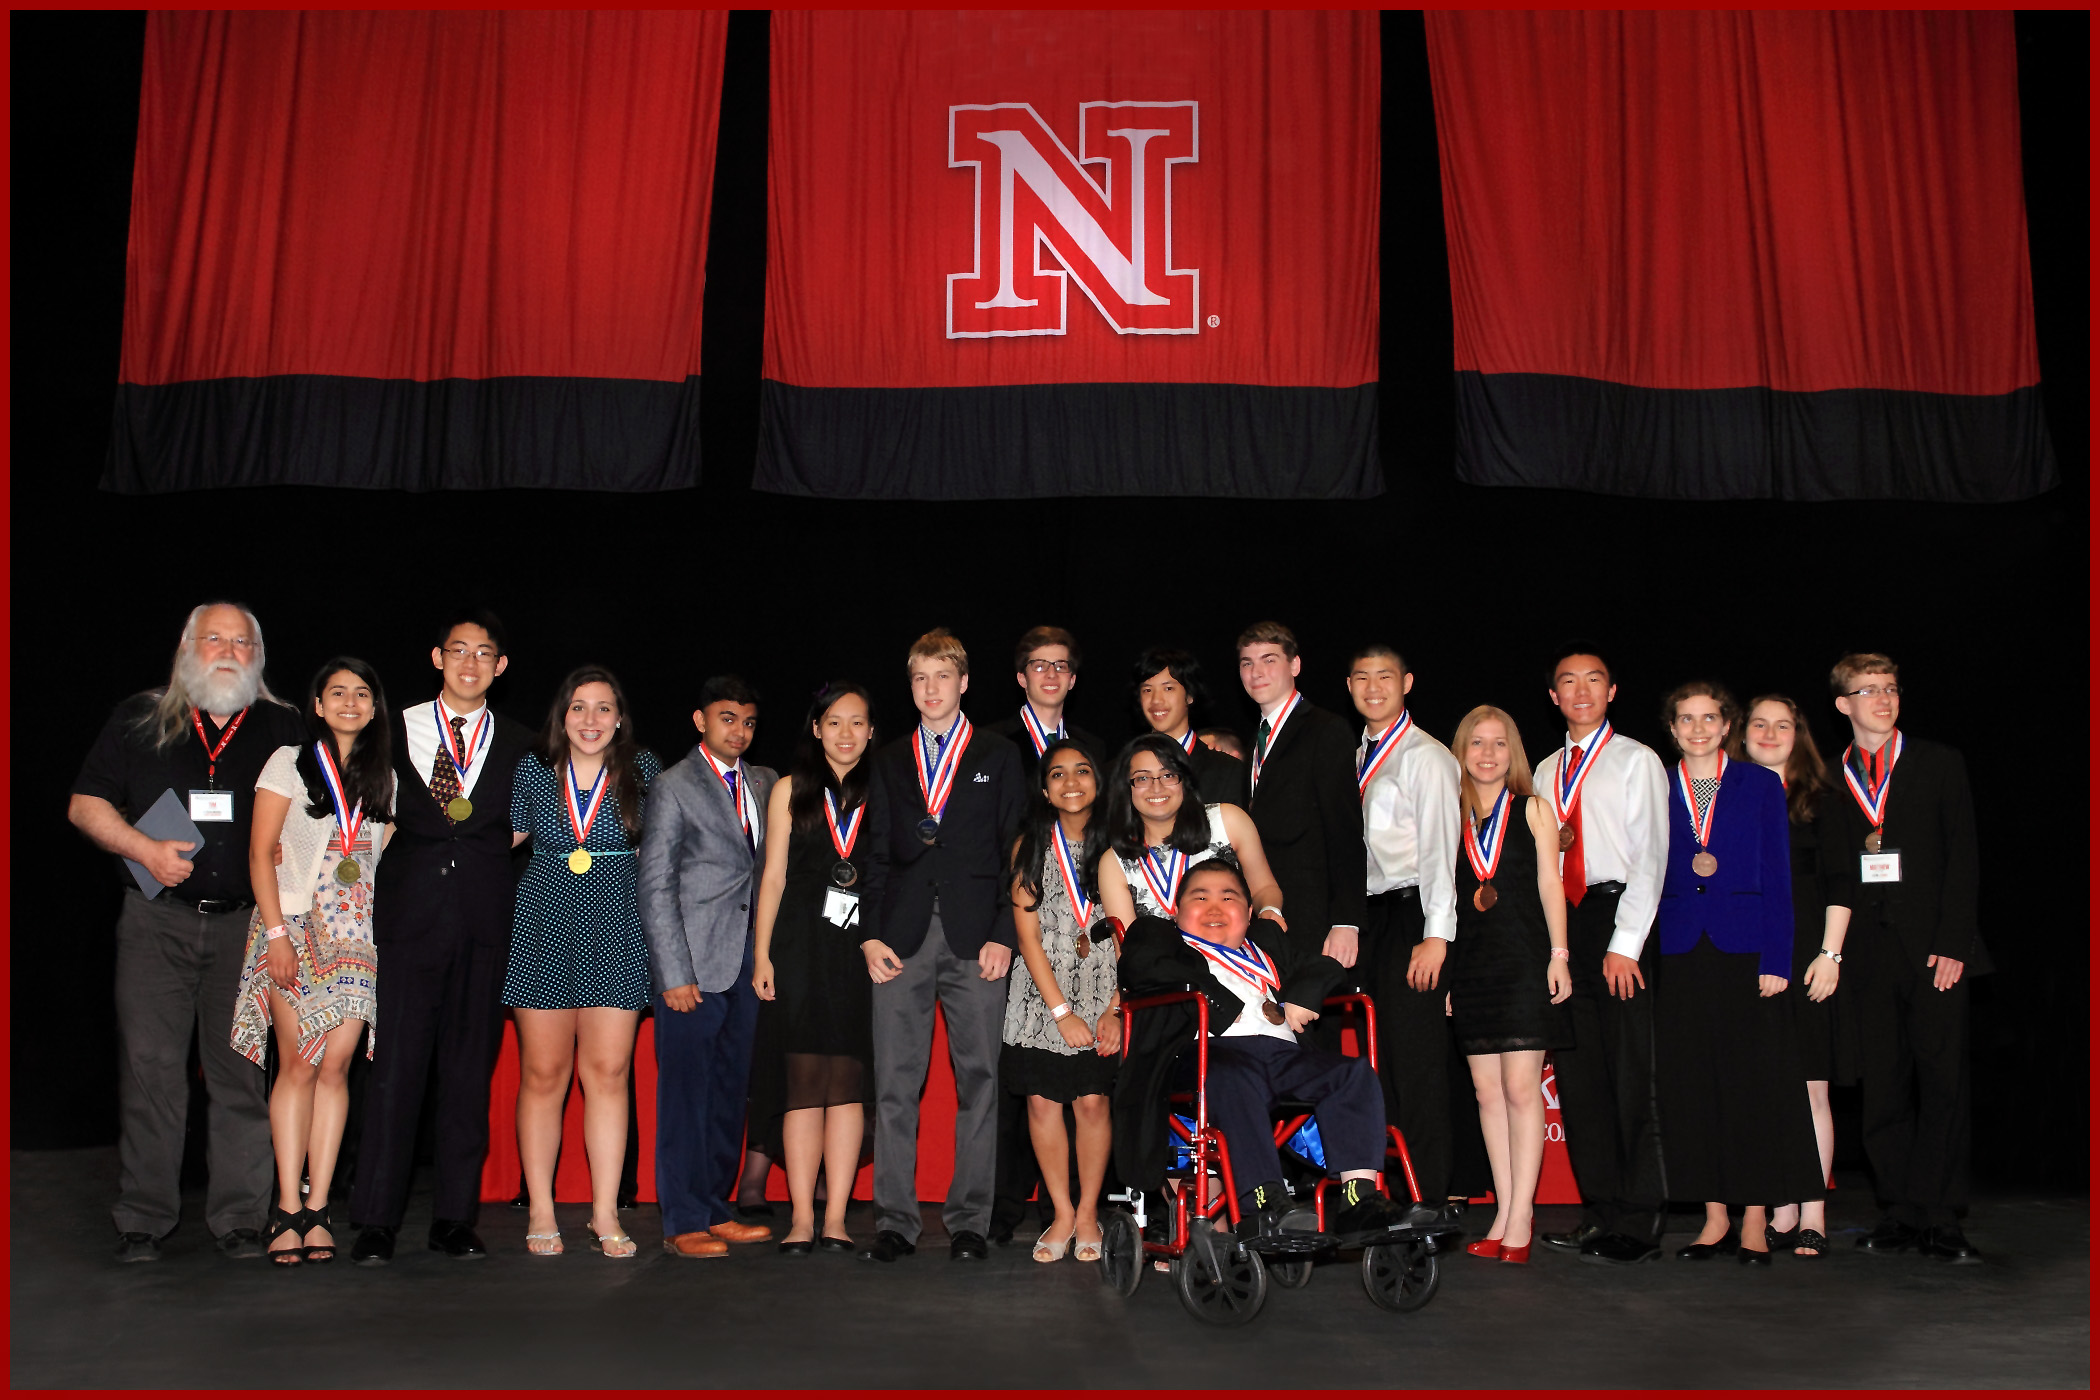 Protein Modeling winners at the 2015 Science Olympiad National Tournament